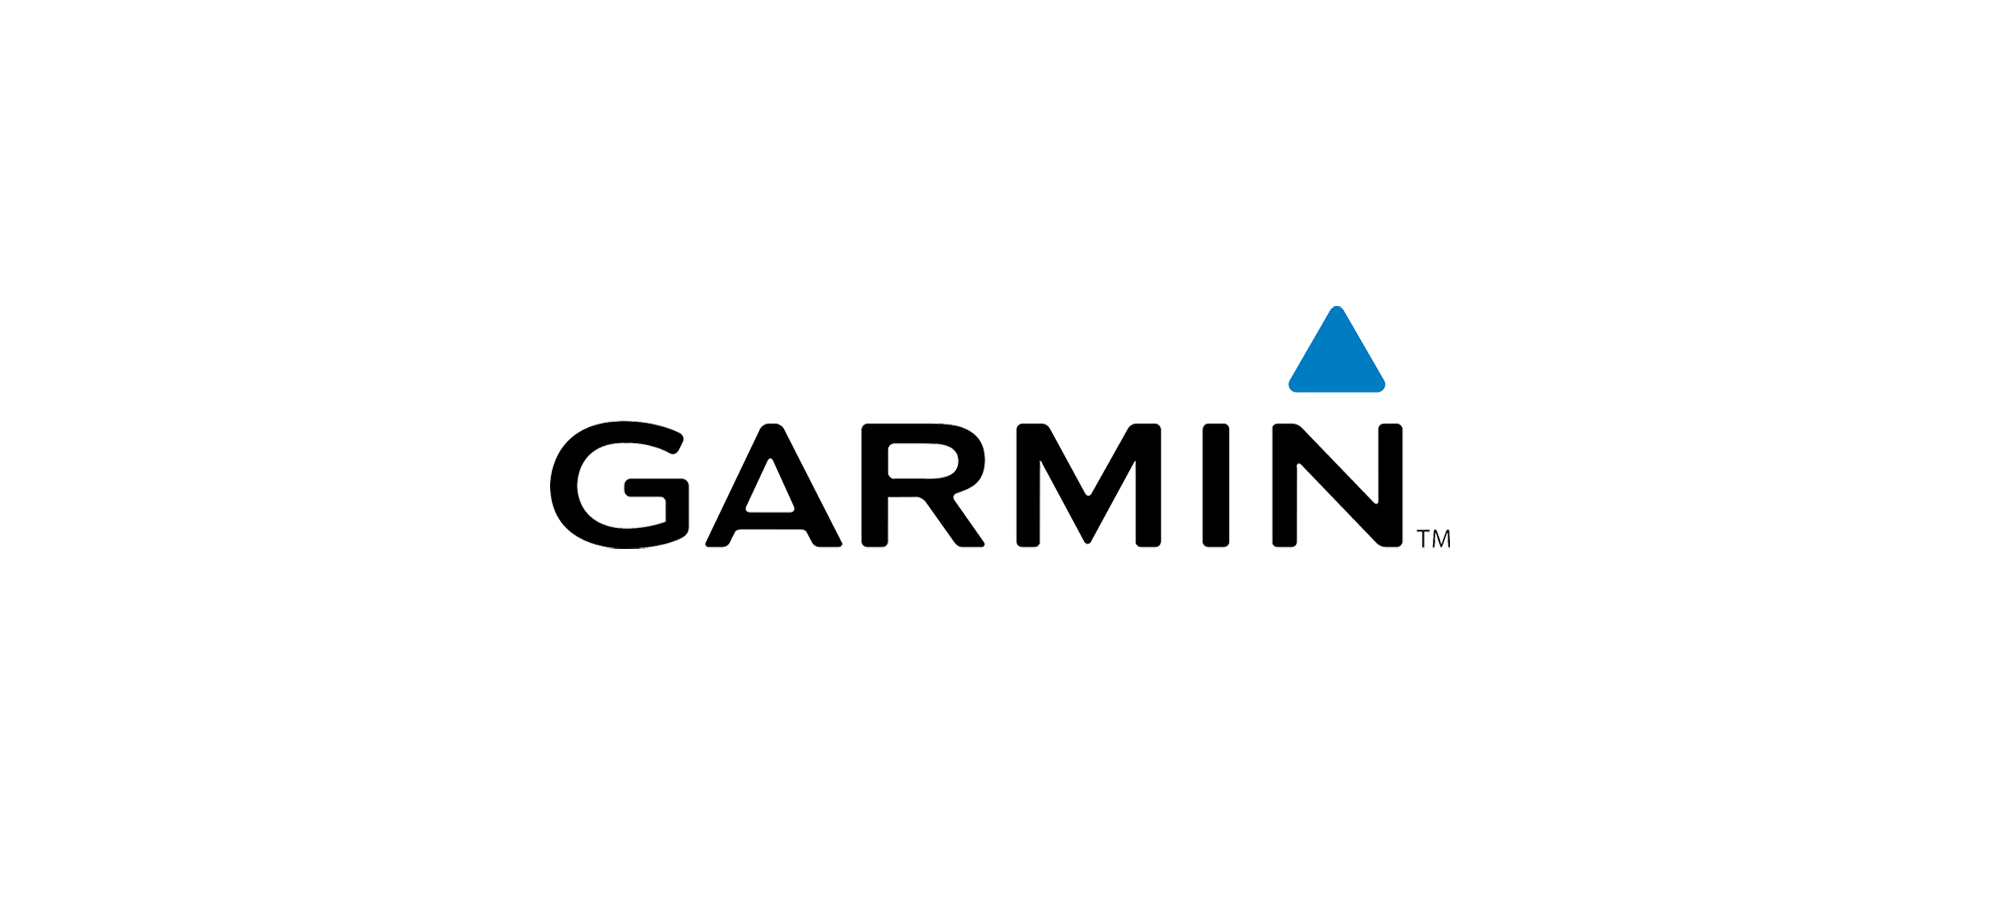 Garmin - From Chief IP Counsel to IP business partner, our attorneys work closely with GARMIN, the world leader in GPS technologies.